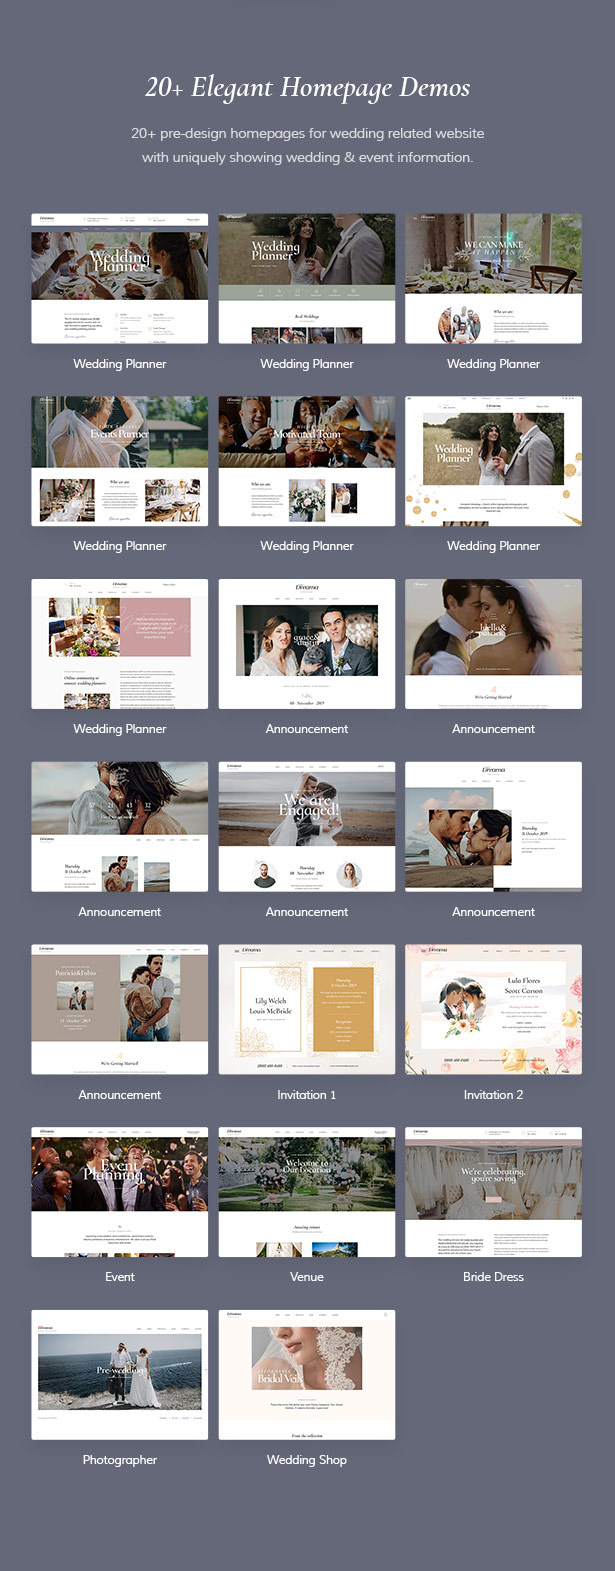 20+ Homepage Demos Dreama Responsive Engagement & Wedding Planner WordPress Theme